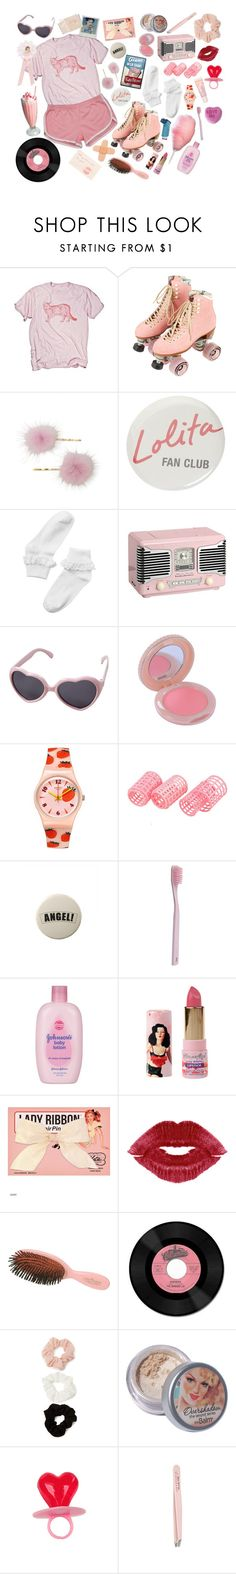 """rollerskating lolita"" by pixiekeen ❤ liked on Polyvore featuring Moxi, Monki, Paul & Joe, American Eagle Outfitters, Paul Smith, Johnson's Baby, Mason Pearson, Forever 21, Hahn and TheBalm"